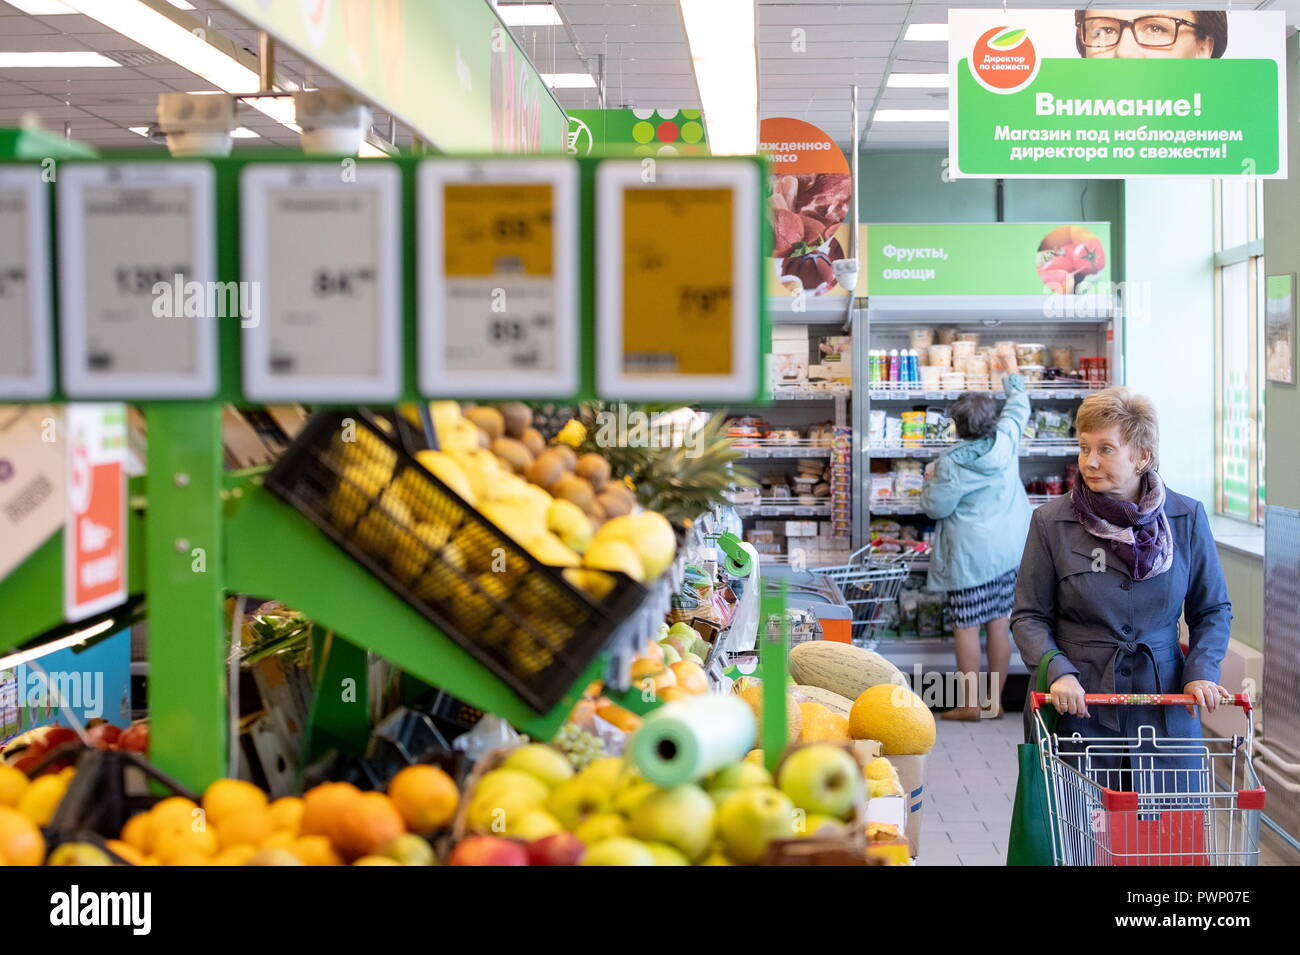 Shops Pyaterochka. Reviews of employees about work in Pyaterochka